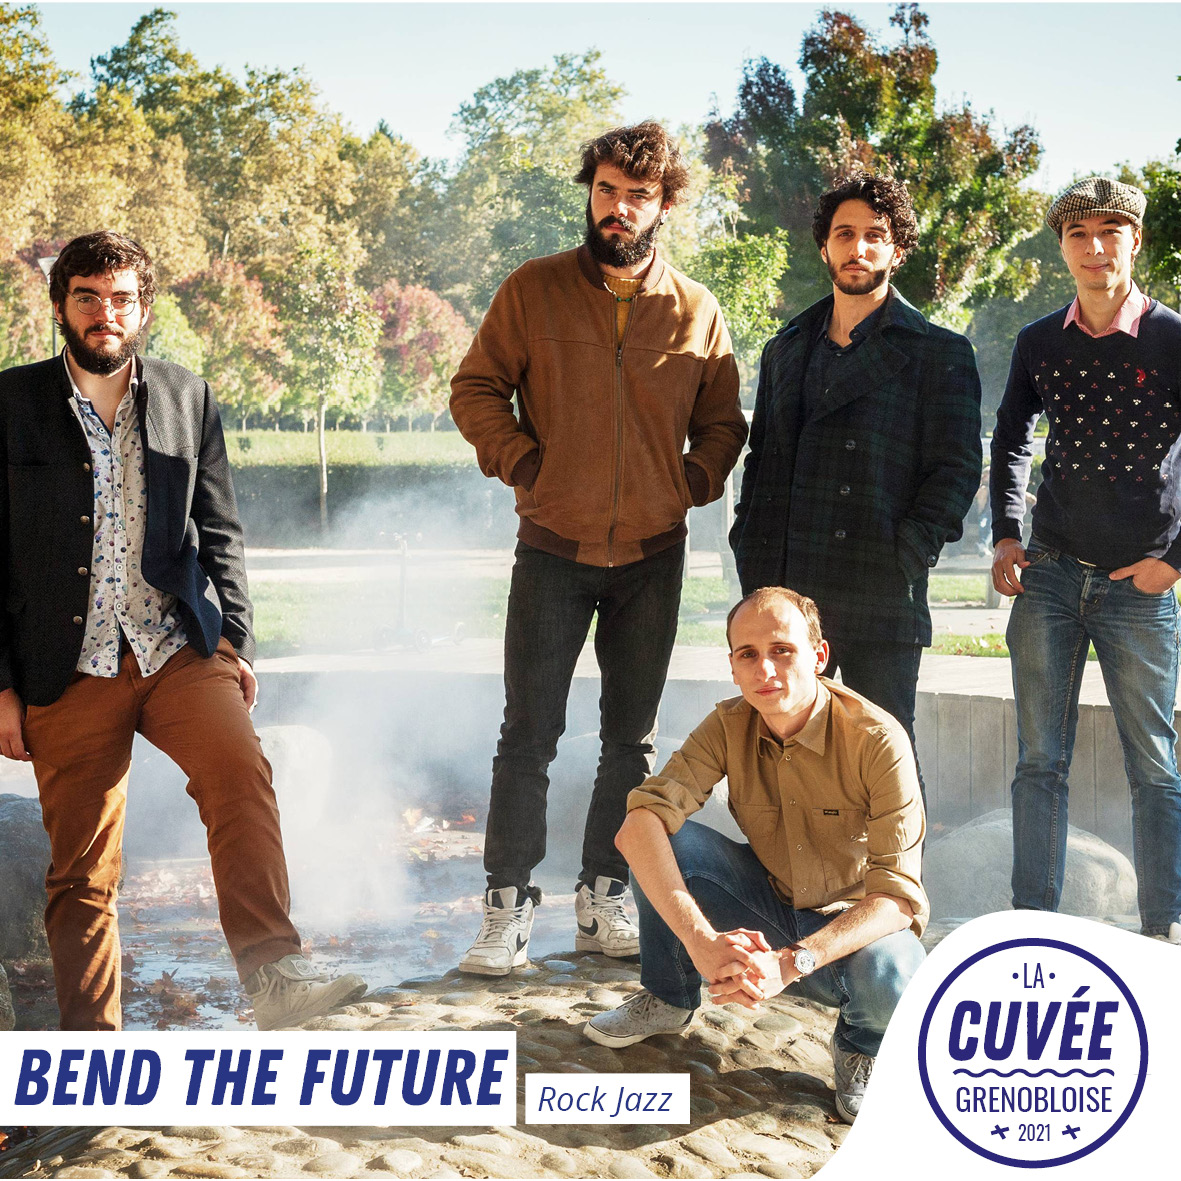 Bend the future